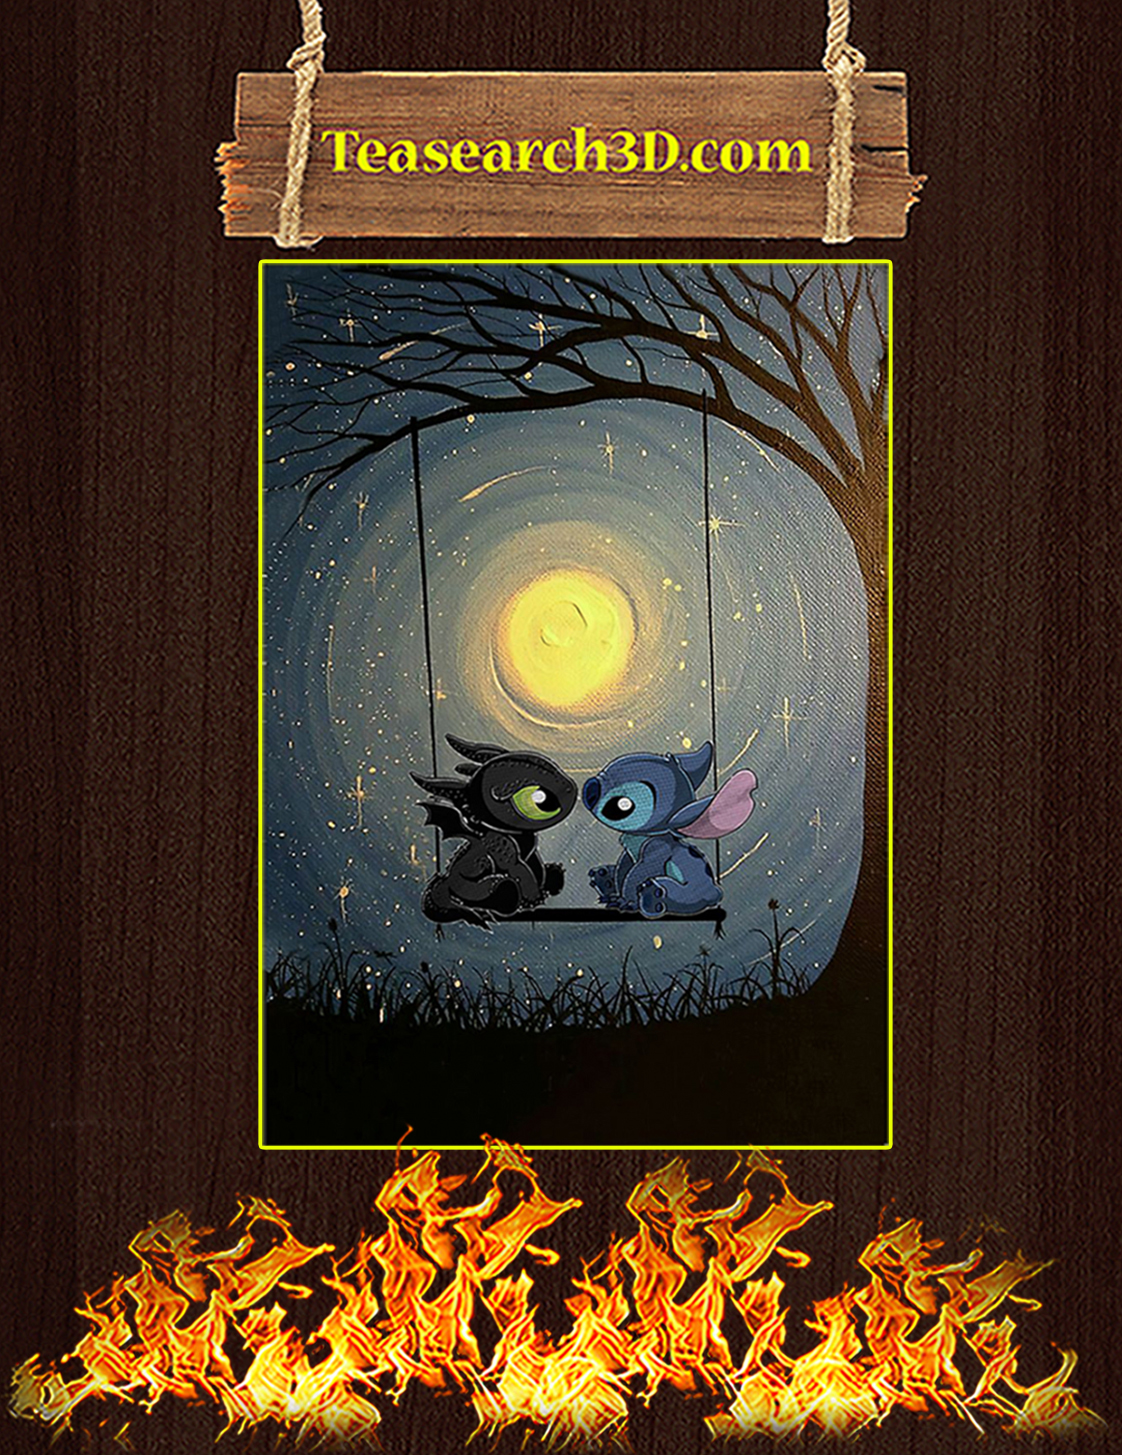 Stitch and toothless talking to the moon poster A3